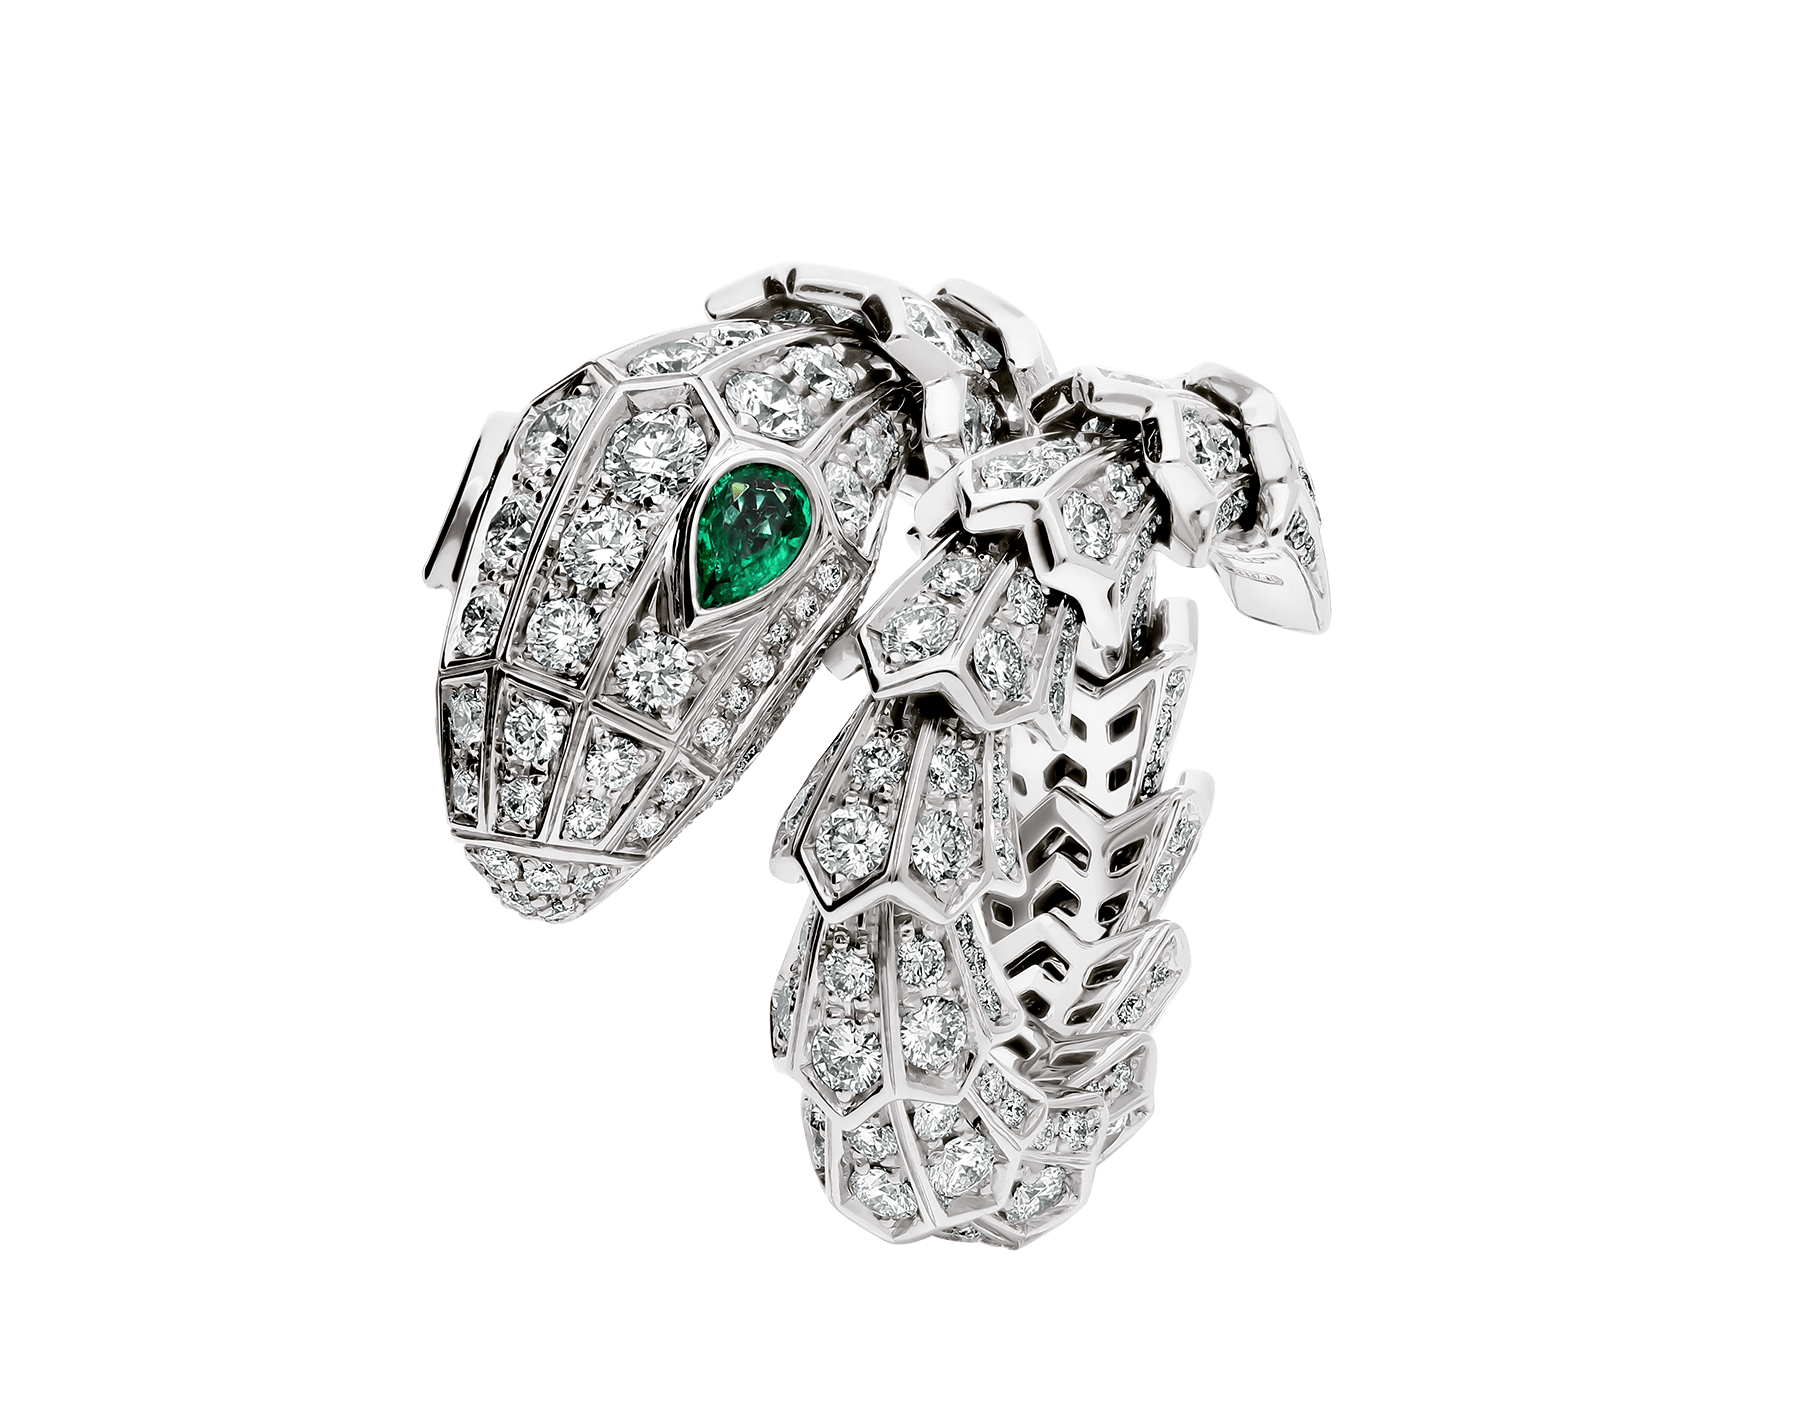 Serpenti 18 kt white gold ring set with pavé diamonds and two emerald eyes. AN858323 image 1